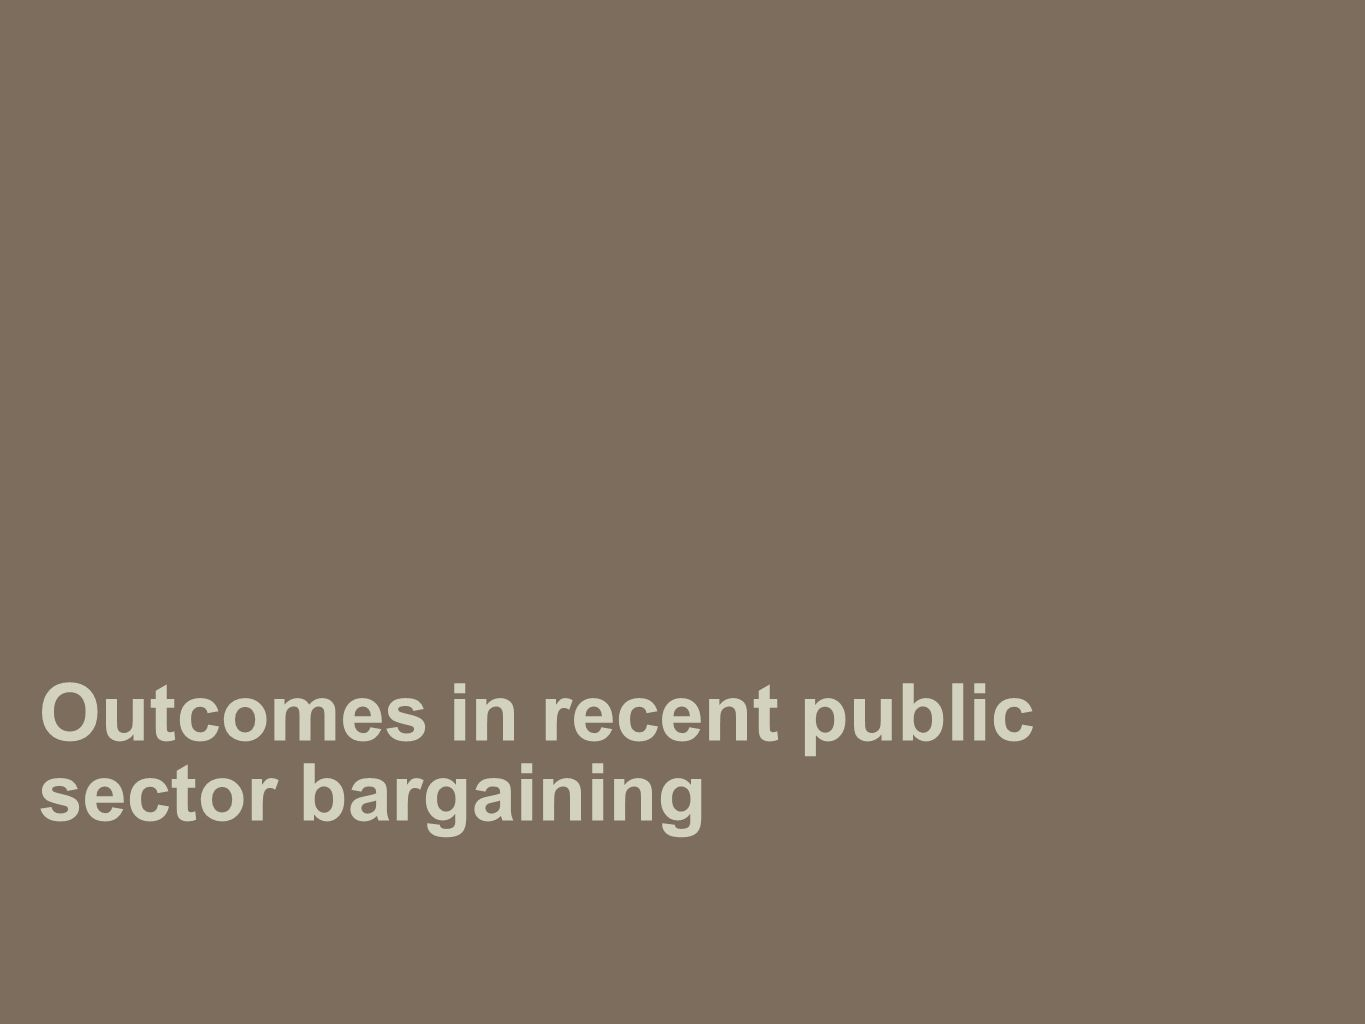 Outcomes in recent public sector bargaining